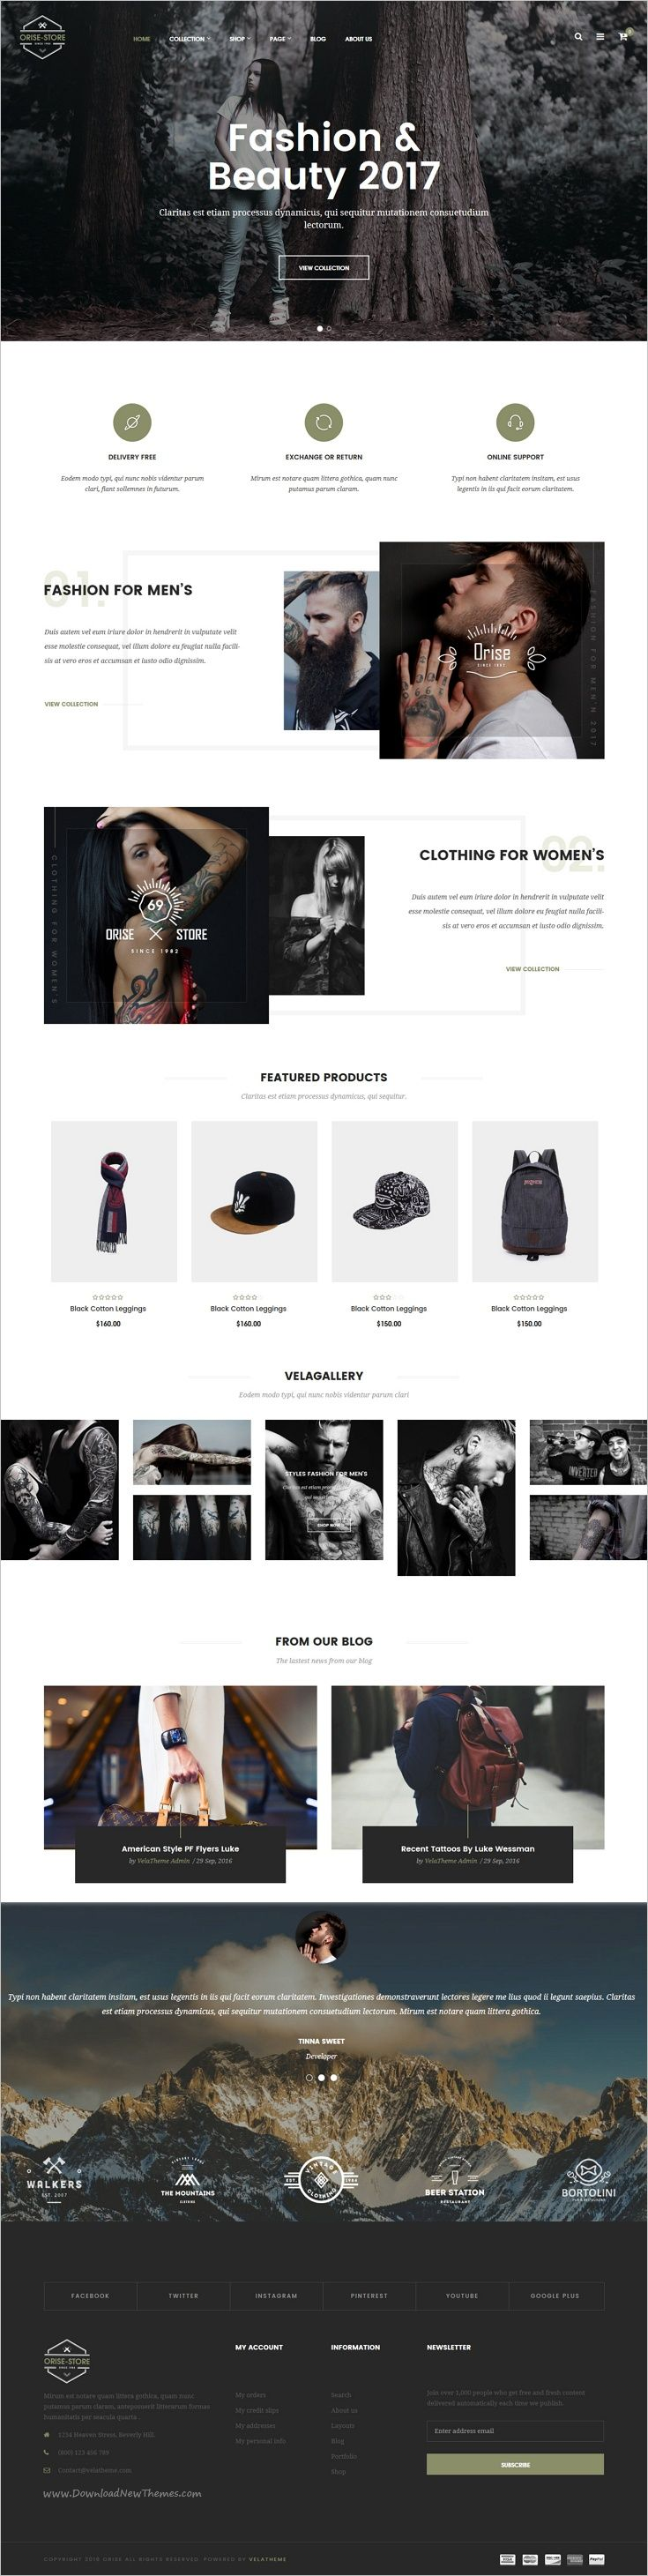 Orise is a wonderful 4in1 responsive #Shopify theme for multipurpose #eCommerce website download now➩ https://themeforest.net/item/orise-multi-concept-shopify-theme/17961970?ref=Datasata